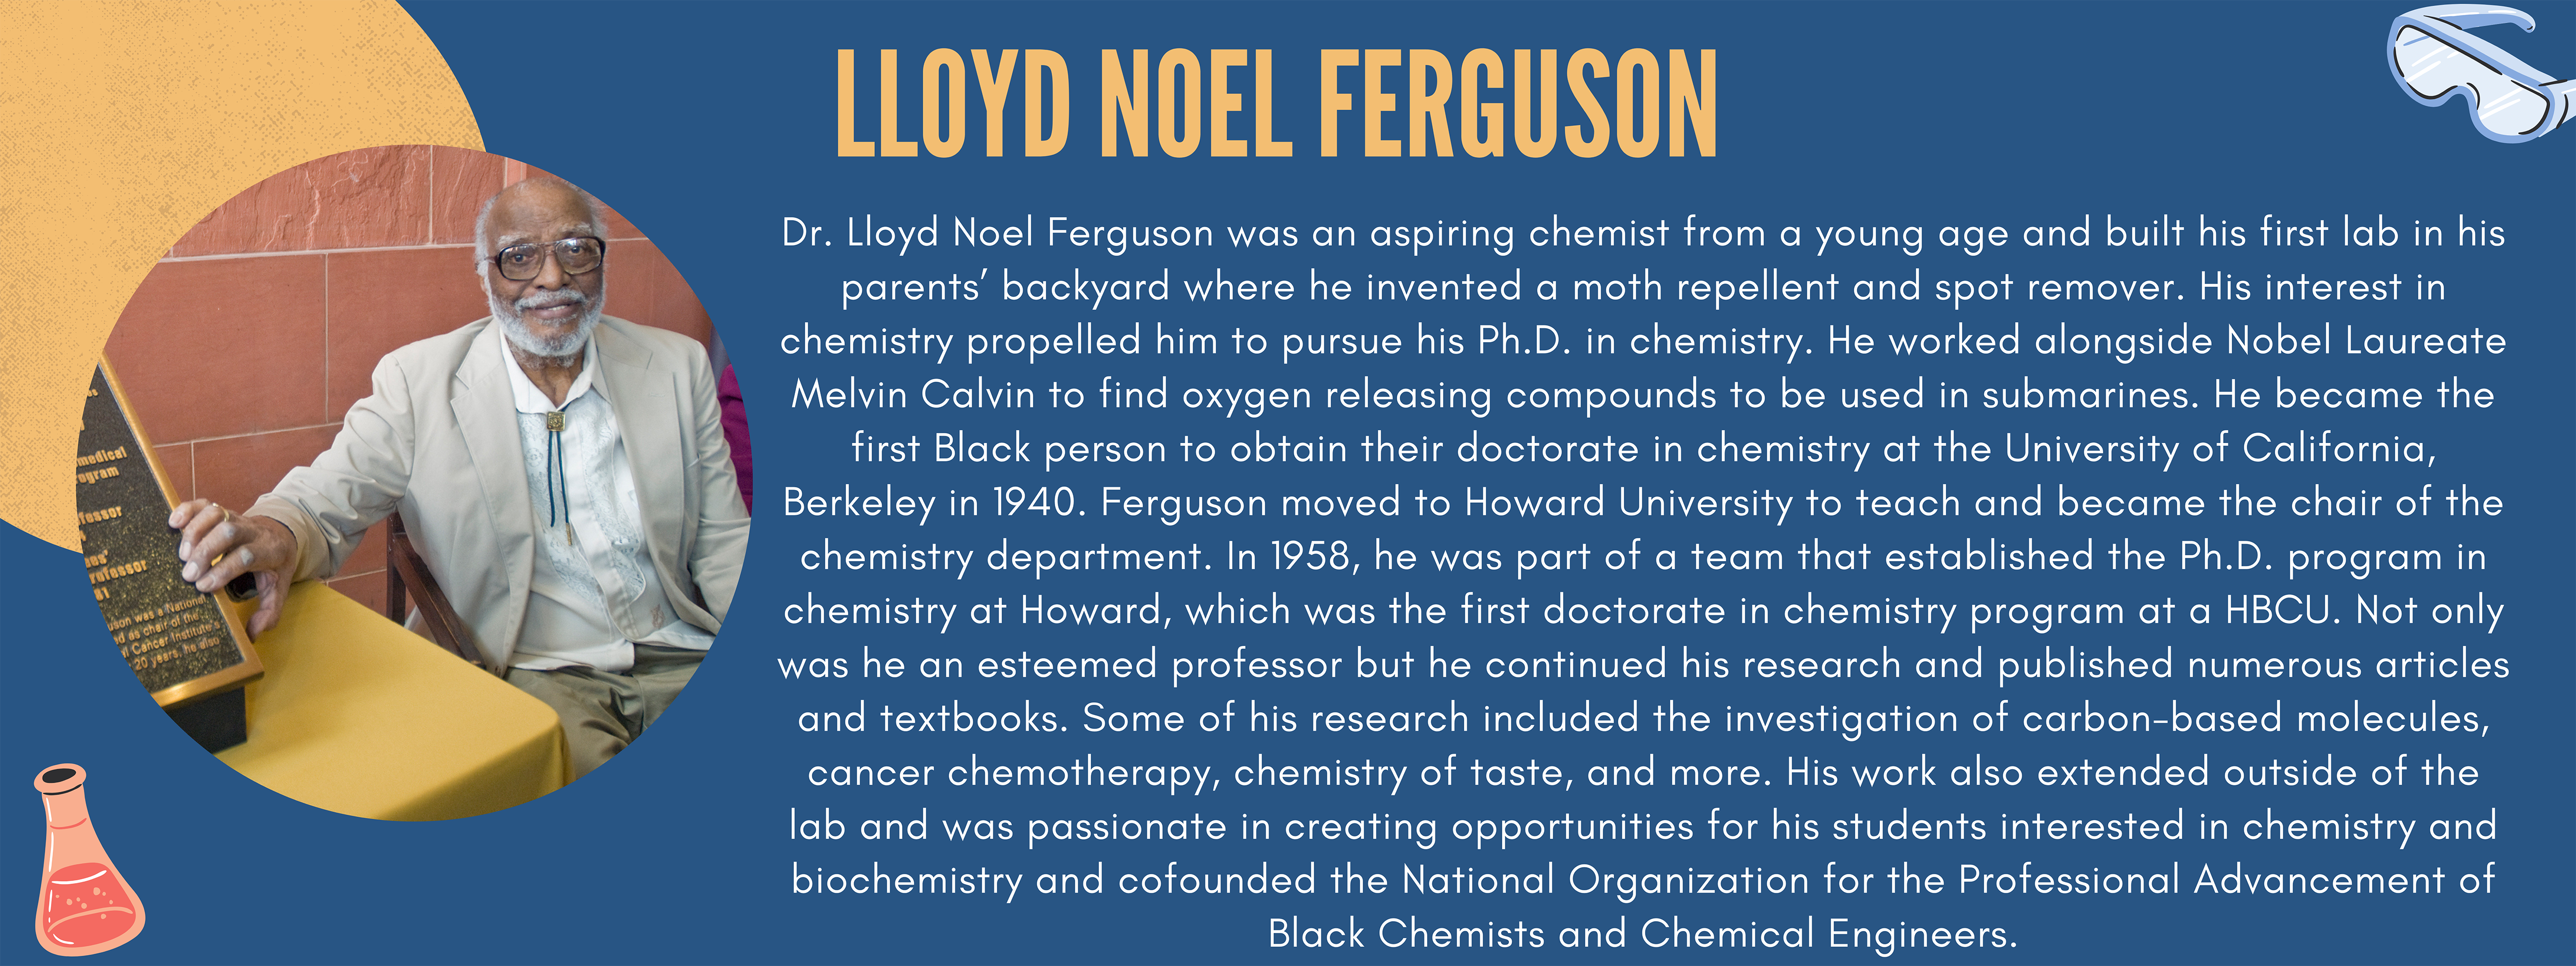 Dr. Lloyd Noel Ferguson was an aspiring chemist from a young age and built his first lab in his parents' backyard where he invented a moth repellent and spot remover. His interest in chemistry propelled him to pursue his Ph.D. in chemistry. He worked alongside Nobel Laureate Melvin Calvin to find oxygen releasing compounds to be used in submarines. He became the first Black person to obtain their doctorate in chemistry at the University of California, Berkeley in 1940. Ferguson moved to Howard University to teach and became the chair of the chemistry department. In 1958, he was part of a team that established the Ph.D. program in chemistry at Howard, which was the first doctorate in chemistry program at a HBCU. Not only was he an esteemed professor but he continued his research and published numerous articles and textbooks. Some of his research included the investigation of carbon-based molecules, cancer chemotherapy, chemistry of taste, and more. His work also extended outside of the lab and was passionate in creating opportunities for his students interested in chemistry and biochemistry and cofounded the National Organization for the Professional Advancement of Black Chemists and Chemical Engineers.